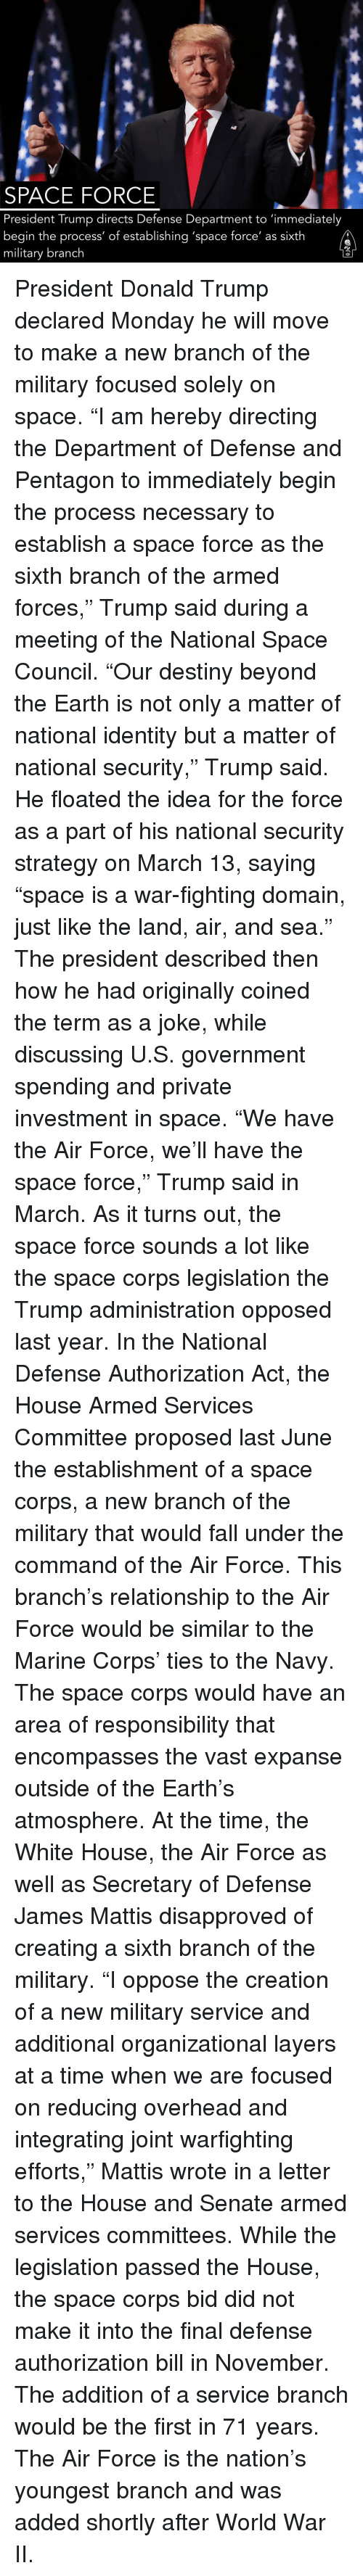 "marine corps: SPACE FORCE  President Trump directs Defense Department to 'immediately  begin the process' of establishing 'space force' as sixth  military branch President Donald Trump declared Monday he will move to make a new branch of the military focused solely on space. ""I am hereby directing the Department of Defense and Pentagon to immediately begin the process necessary to establish a space force as the sixth branch of the armed forces,"" Trump said during a meeting of the National Space Council. ""Our destiny beyond the Earth is not only a matter of national identity but a matter of national security,"" Trump said. He floated the idea for the force as a part of his national security strategy on March 13, saying ""space is a war-fighting domain, just like the land, air, and sea."" The president described then how he had originally coined the term as a joke, while discussing U.S. government spending and private investment in space. ""We have the Air Force, we'll have the space force,"" Trump said in March. As it turns out, the space force sounds a lot like the space corps legislation the Trump administration opposed last year. In the National Defense Authorization Act, the House Armed Services Committee proposed last June the establishment of a space corps, a new branch of the military that would fall under the command of the Air Force. This branch's relationship to the Air Force would be similar to the Marine Corps' ties to the Navy. The space corps would have an area of responsibility that encompasses the vast expanse outside of the Earth's atmosphere. At the time, the White House, the Air Force as well as Secretary of Defense James Mattis disapproved of creating a sixth branch of the military. ""I oppose the creation of a new military service and additional organizational layers at a time when we are focused on reducing overhead and integrating joint warfighting efforts,"" Mattis wrote in a letter to the House and Senate armed services committees. While the legislation passed the House, the space corps bid did not make it into the final defense authorization bill in November. The addition of a service branch would be the first in 71 years. The Air Force is the nation's youngest branch and was added shortly after World War II."